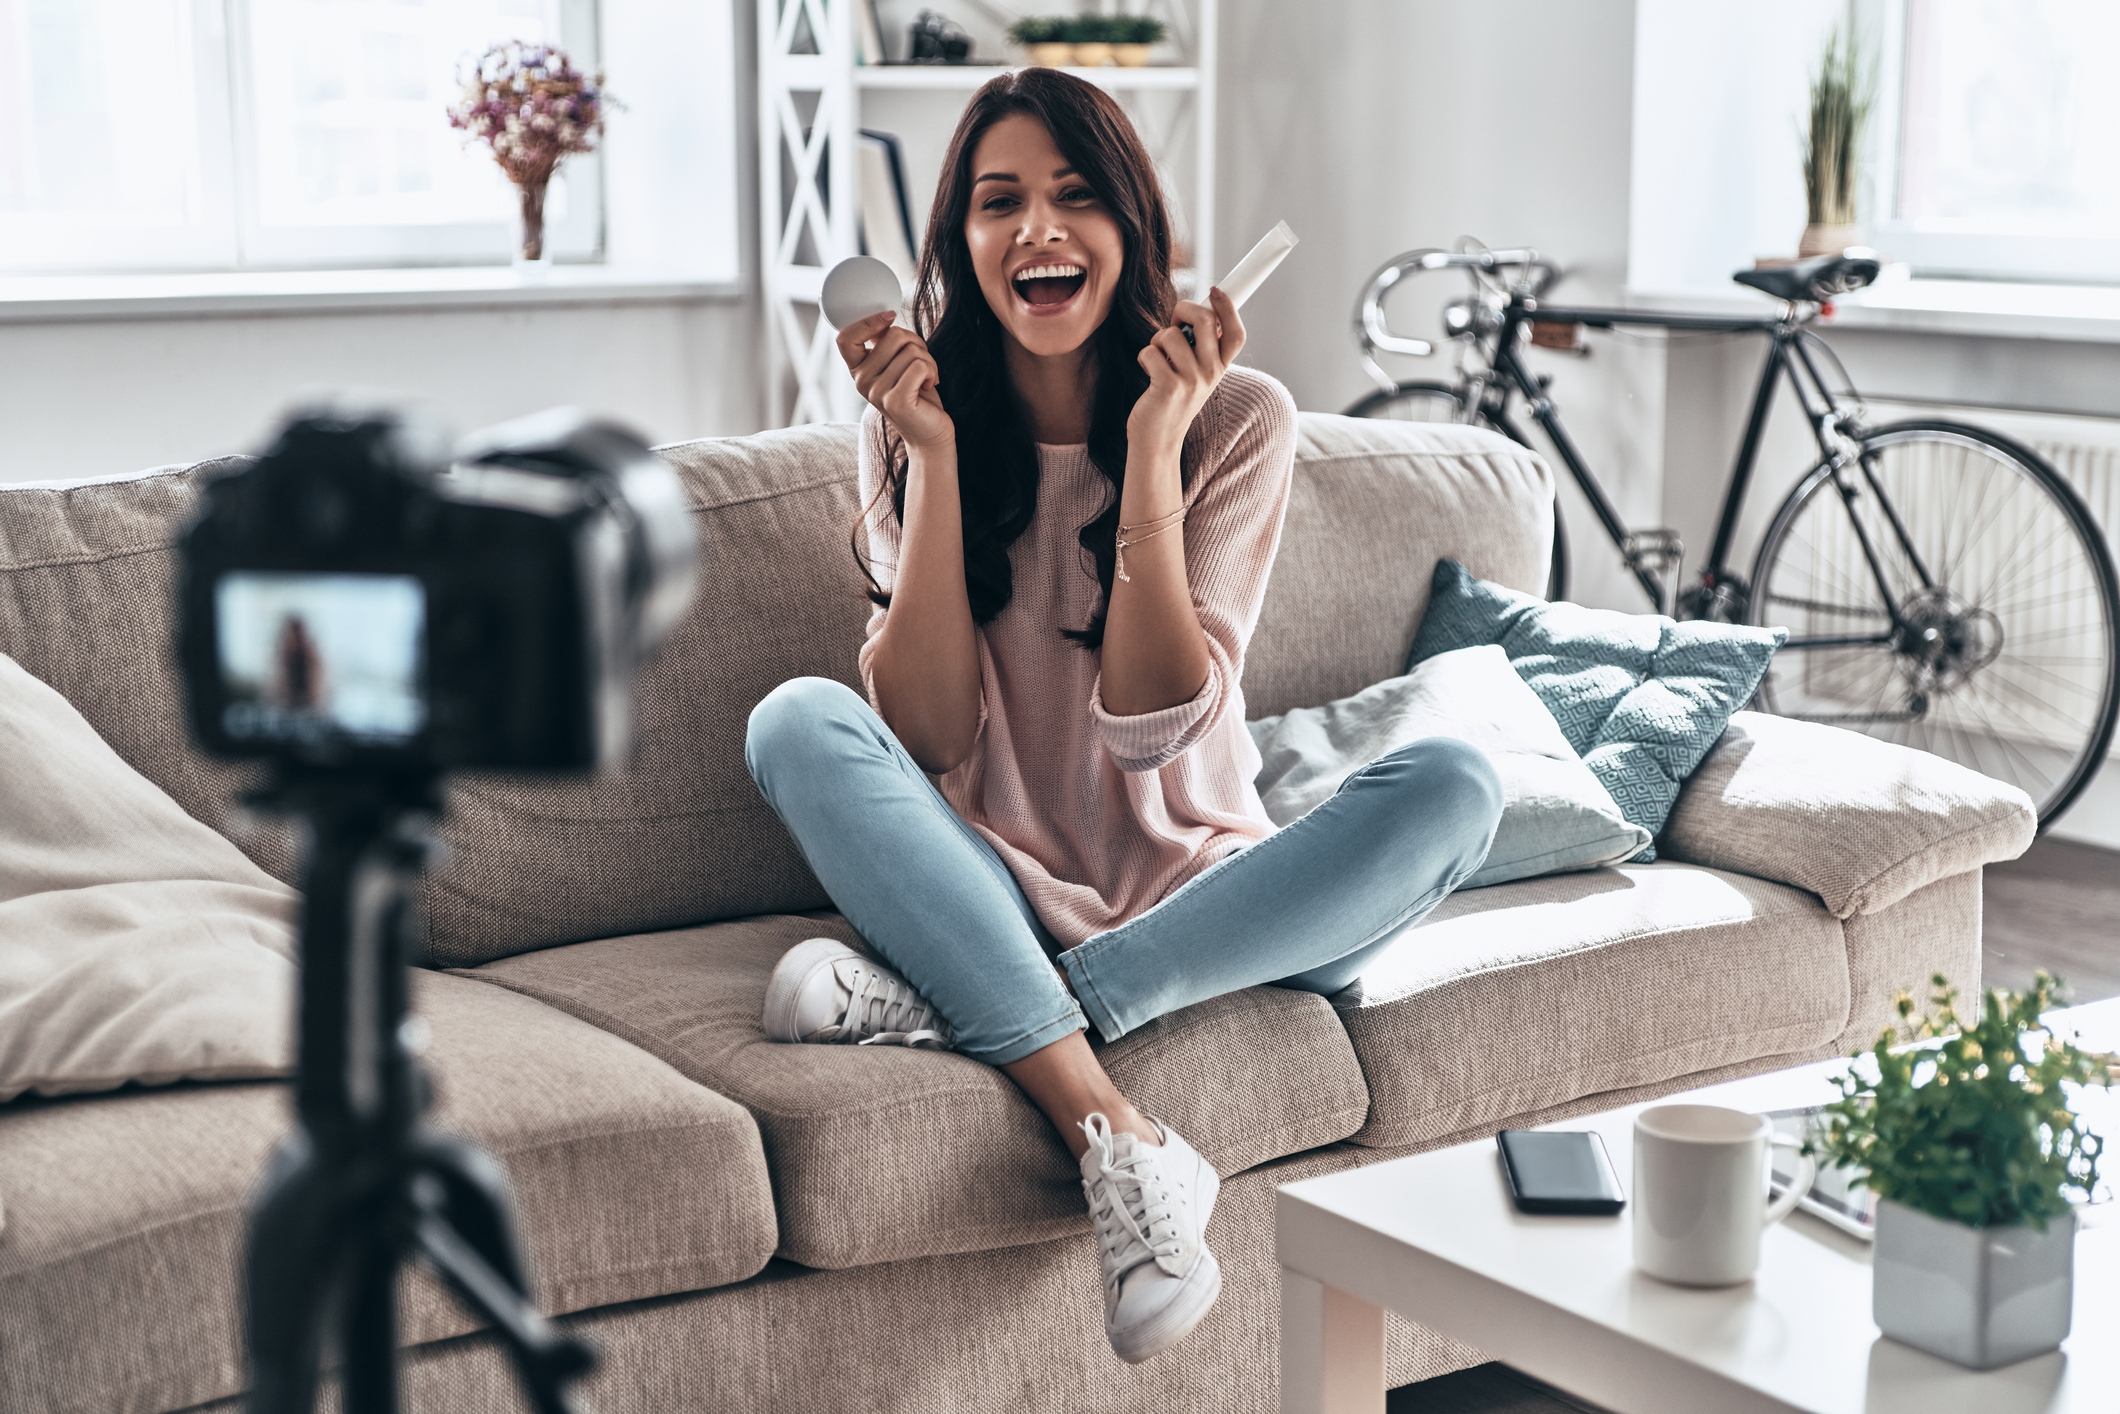 Want to be a social media influencer? There's a degree for that now